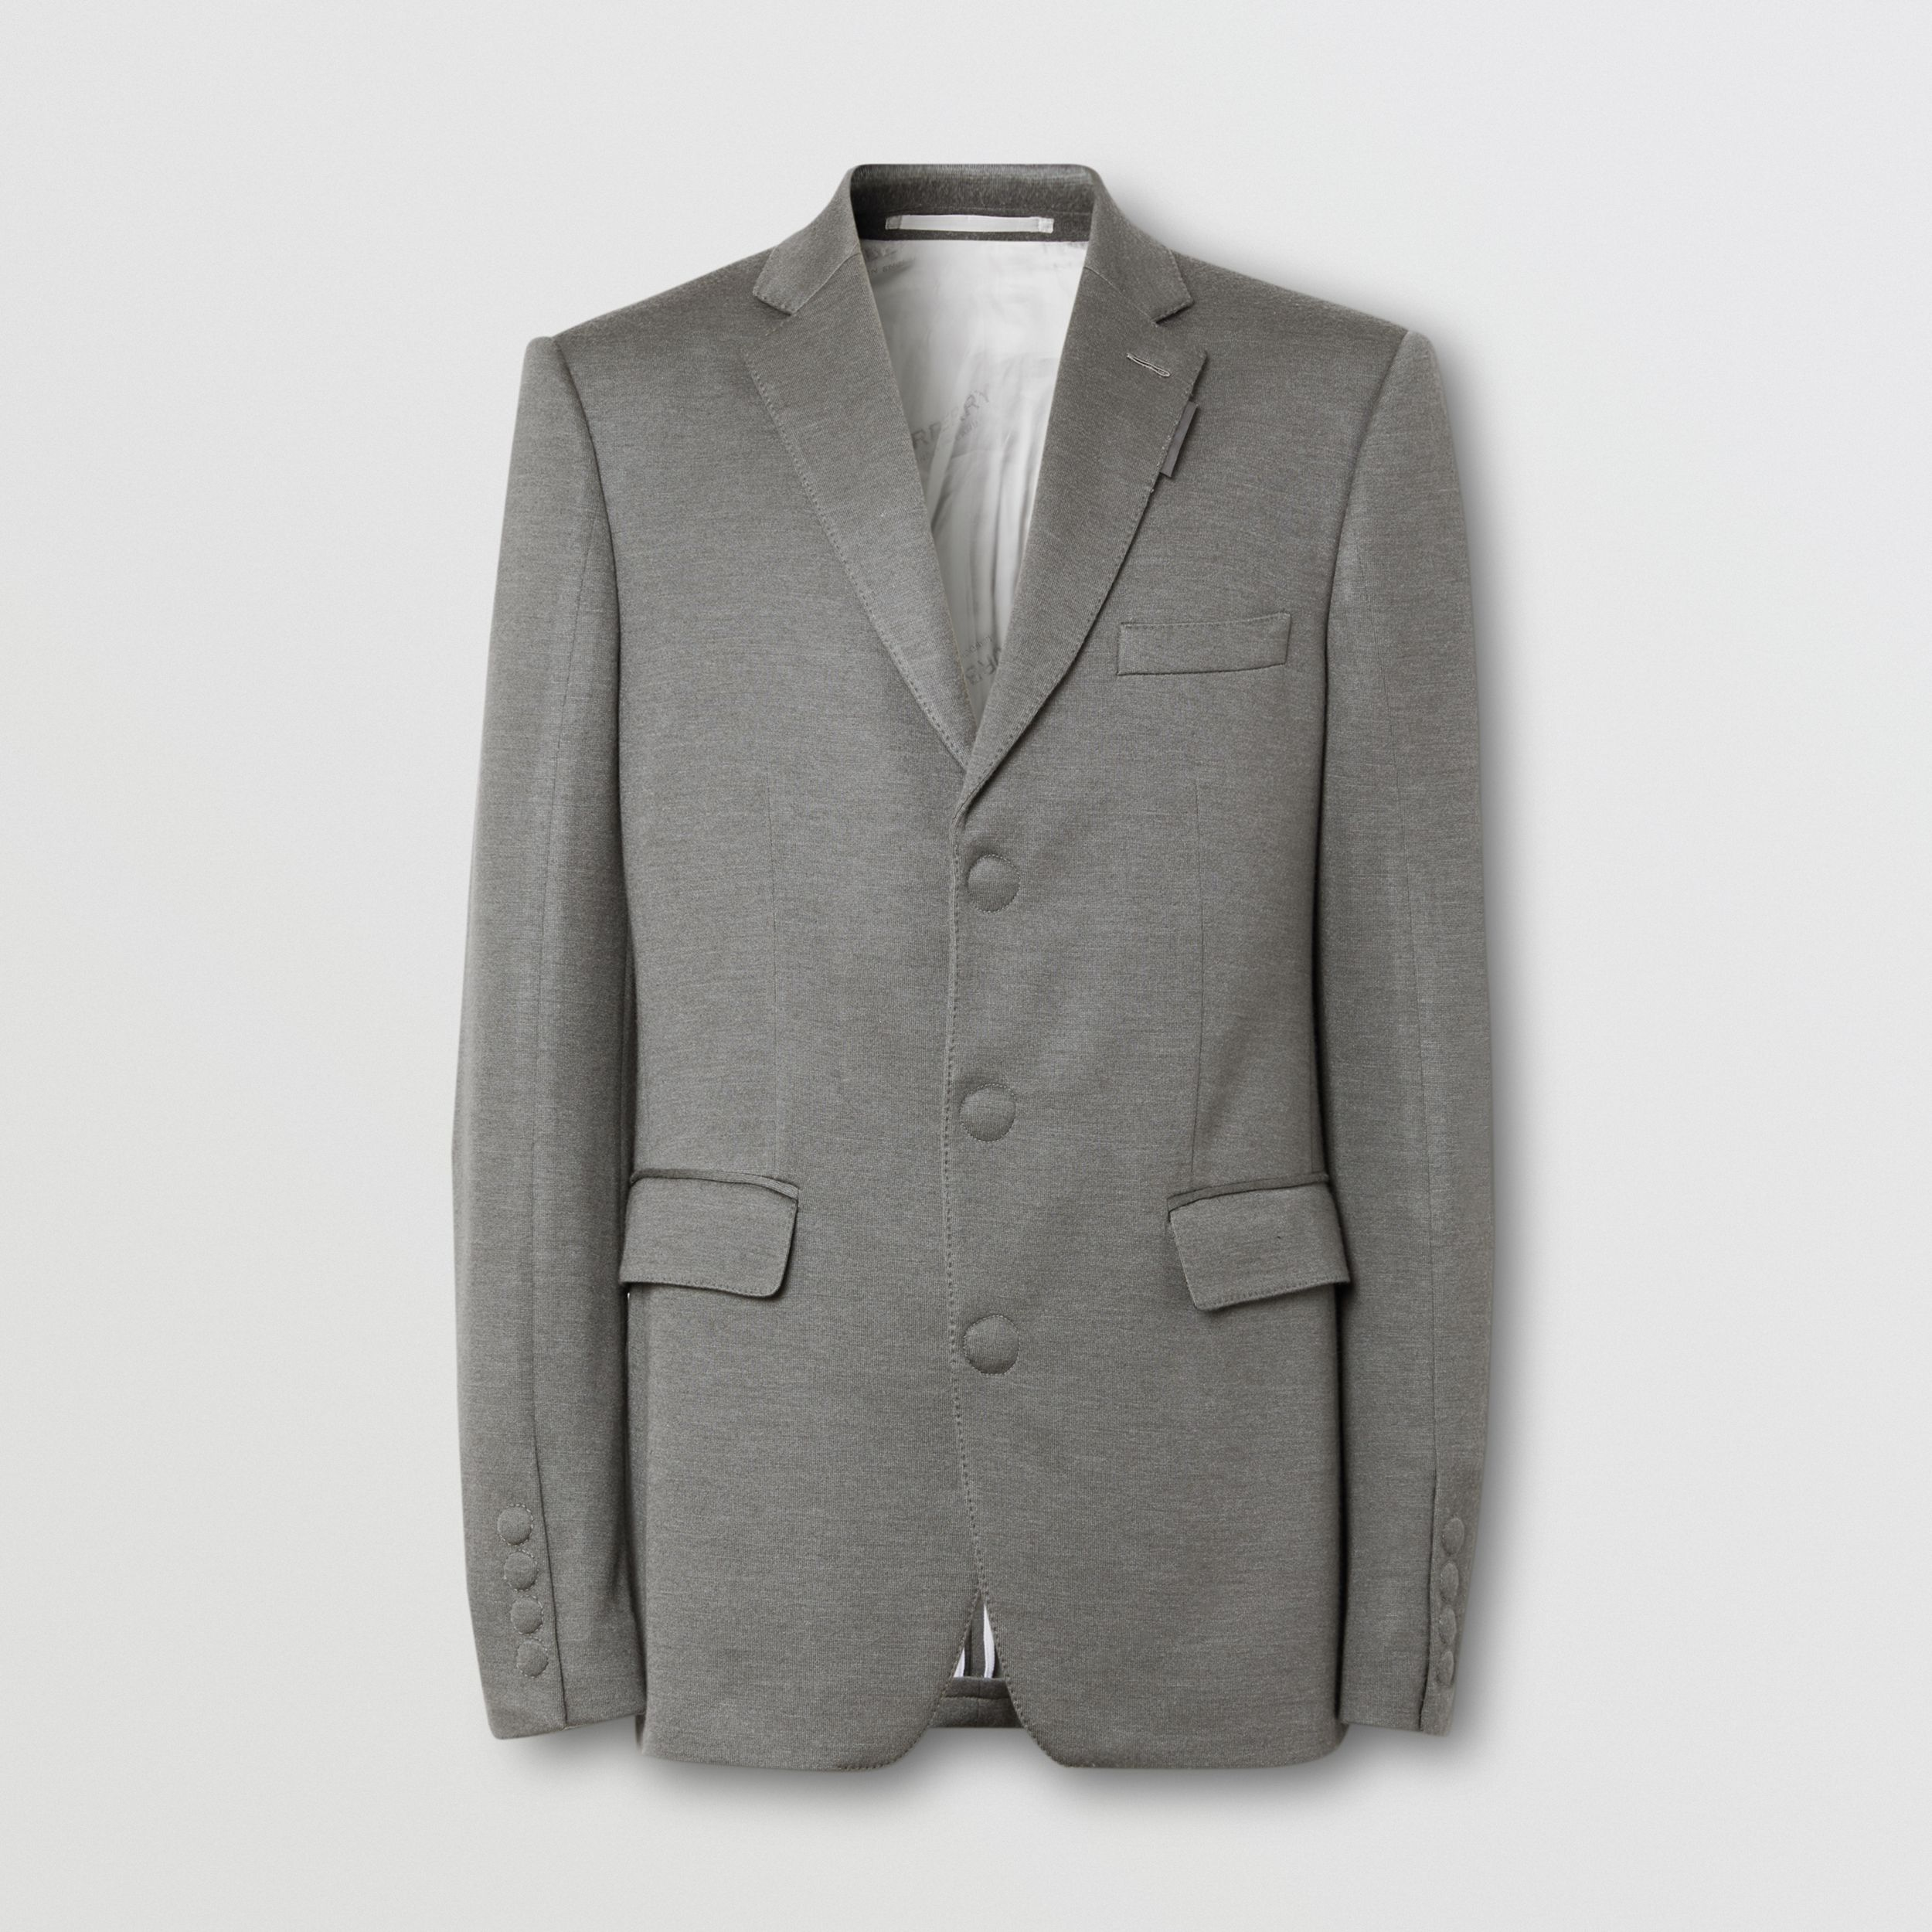 English Fit Cashmere Silk Jersey Tailored Jacket in Cloud Grey - Men | Burberry - 4